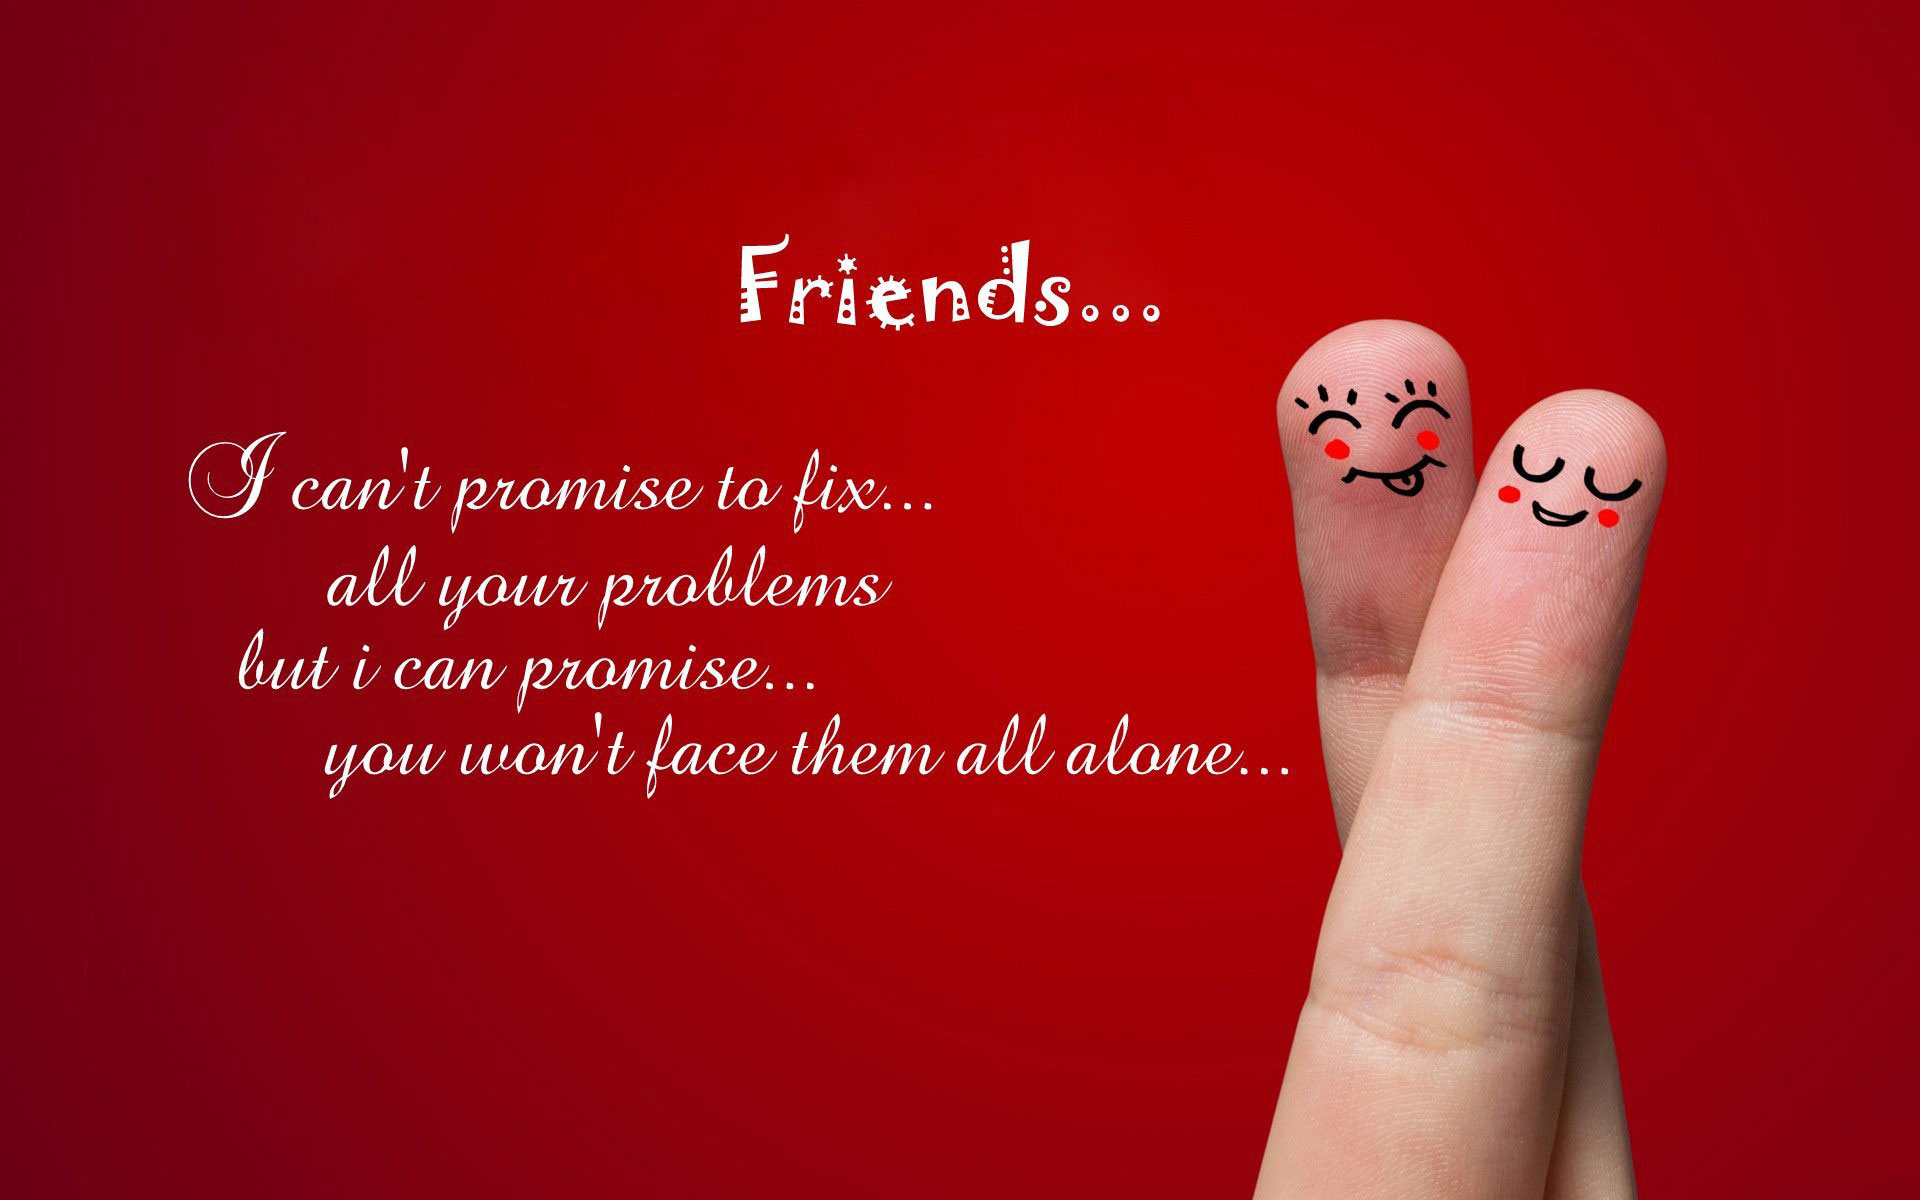 All About Friendship Quotes 40 Cute Friendship Quotes With Images  Friendship Wallpapers